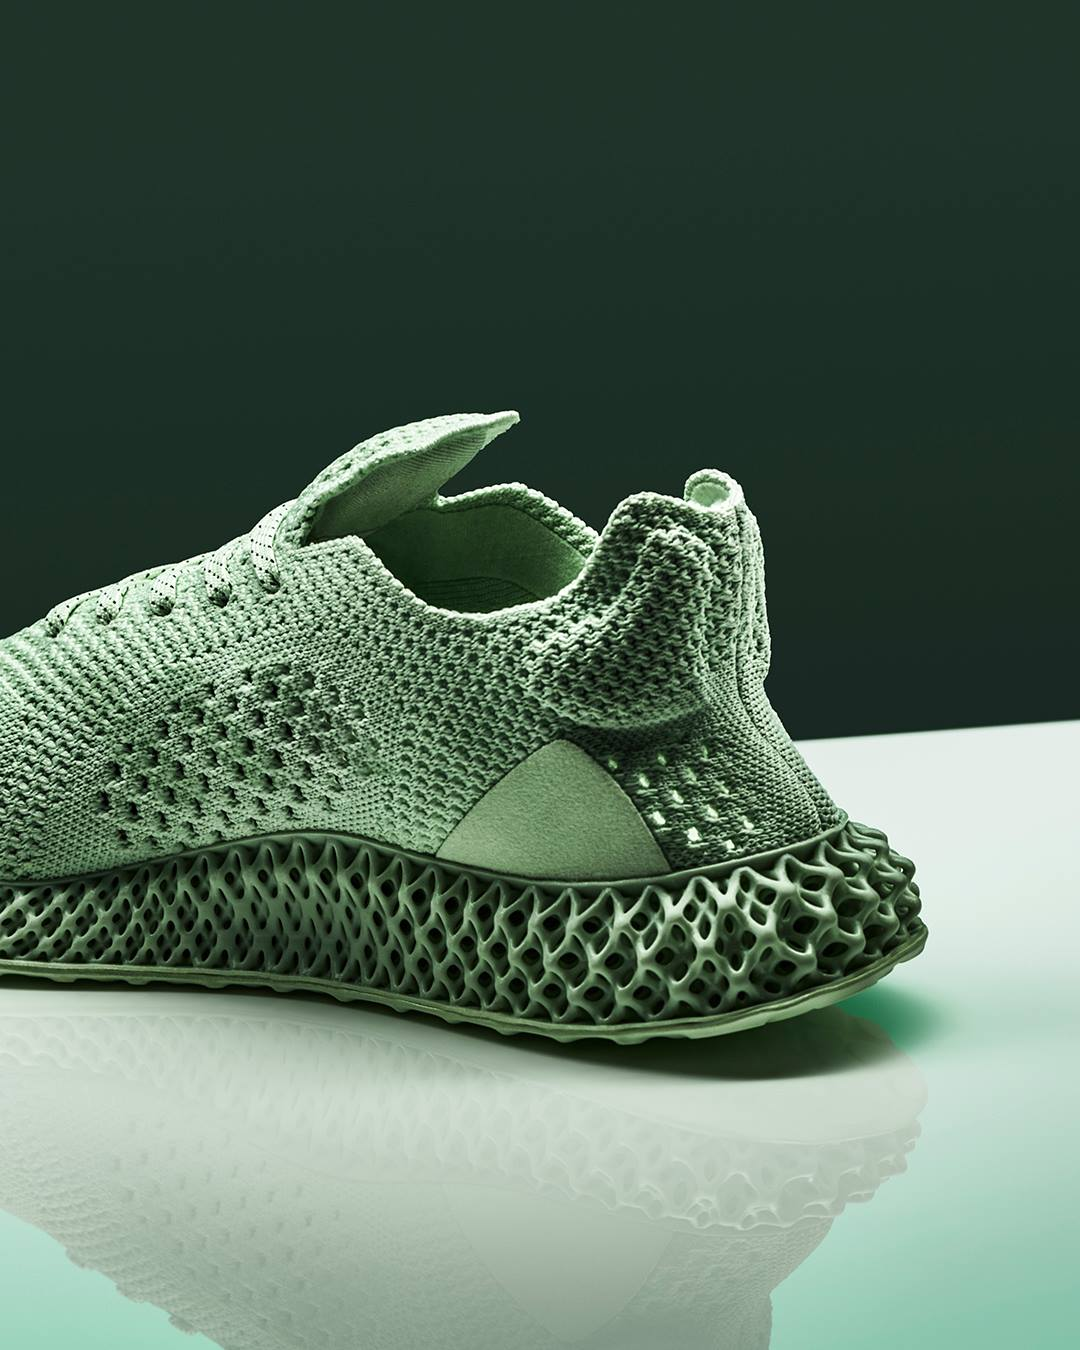 low priced d4b21 7b6a5 Daniel Arsham x adidas FutureCraft 4D